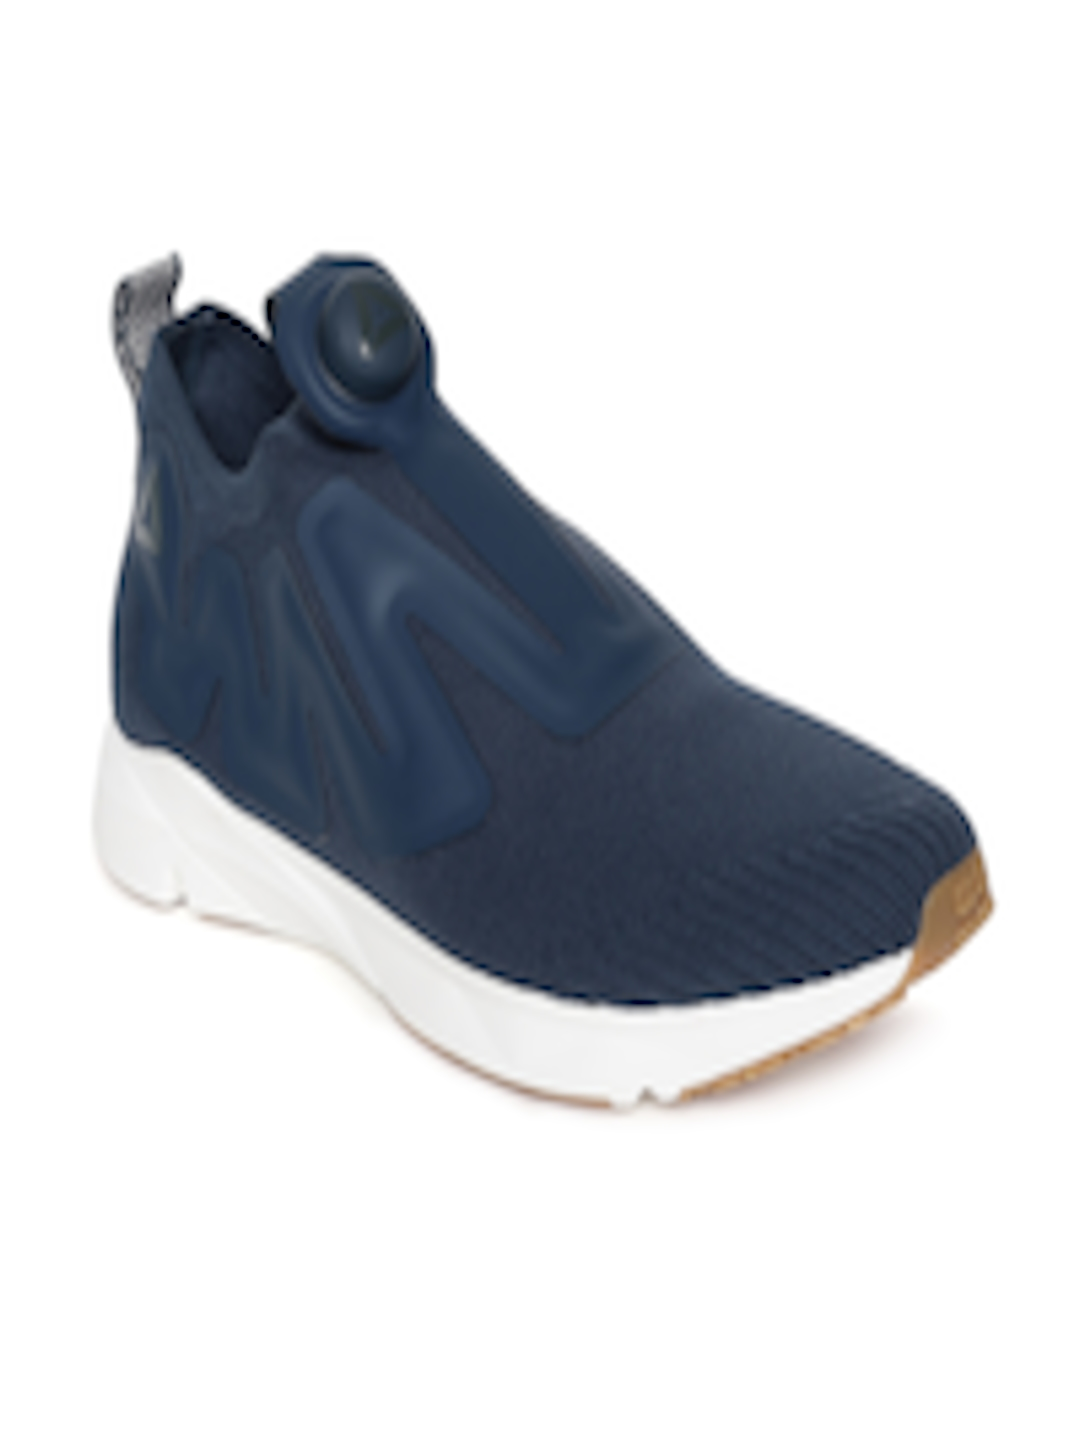 hot-selling cheap utterly stylish detailing Buy Reebok Unisex Navy Blue PUMP SUPREME ULTK Running Shoes - - Footwear  for Unisex